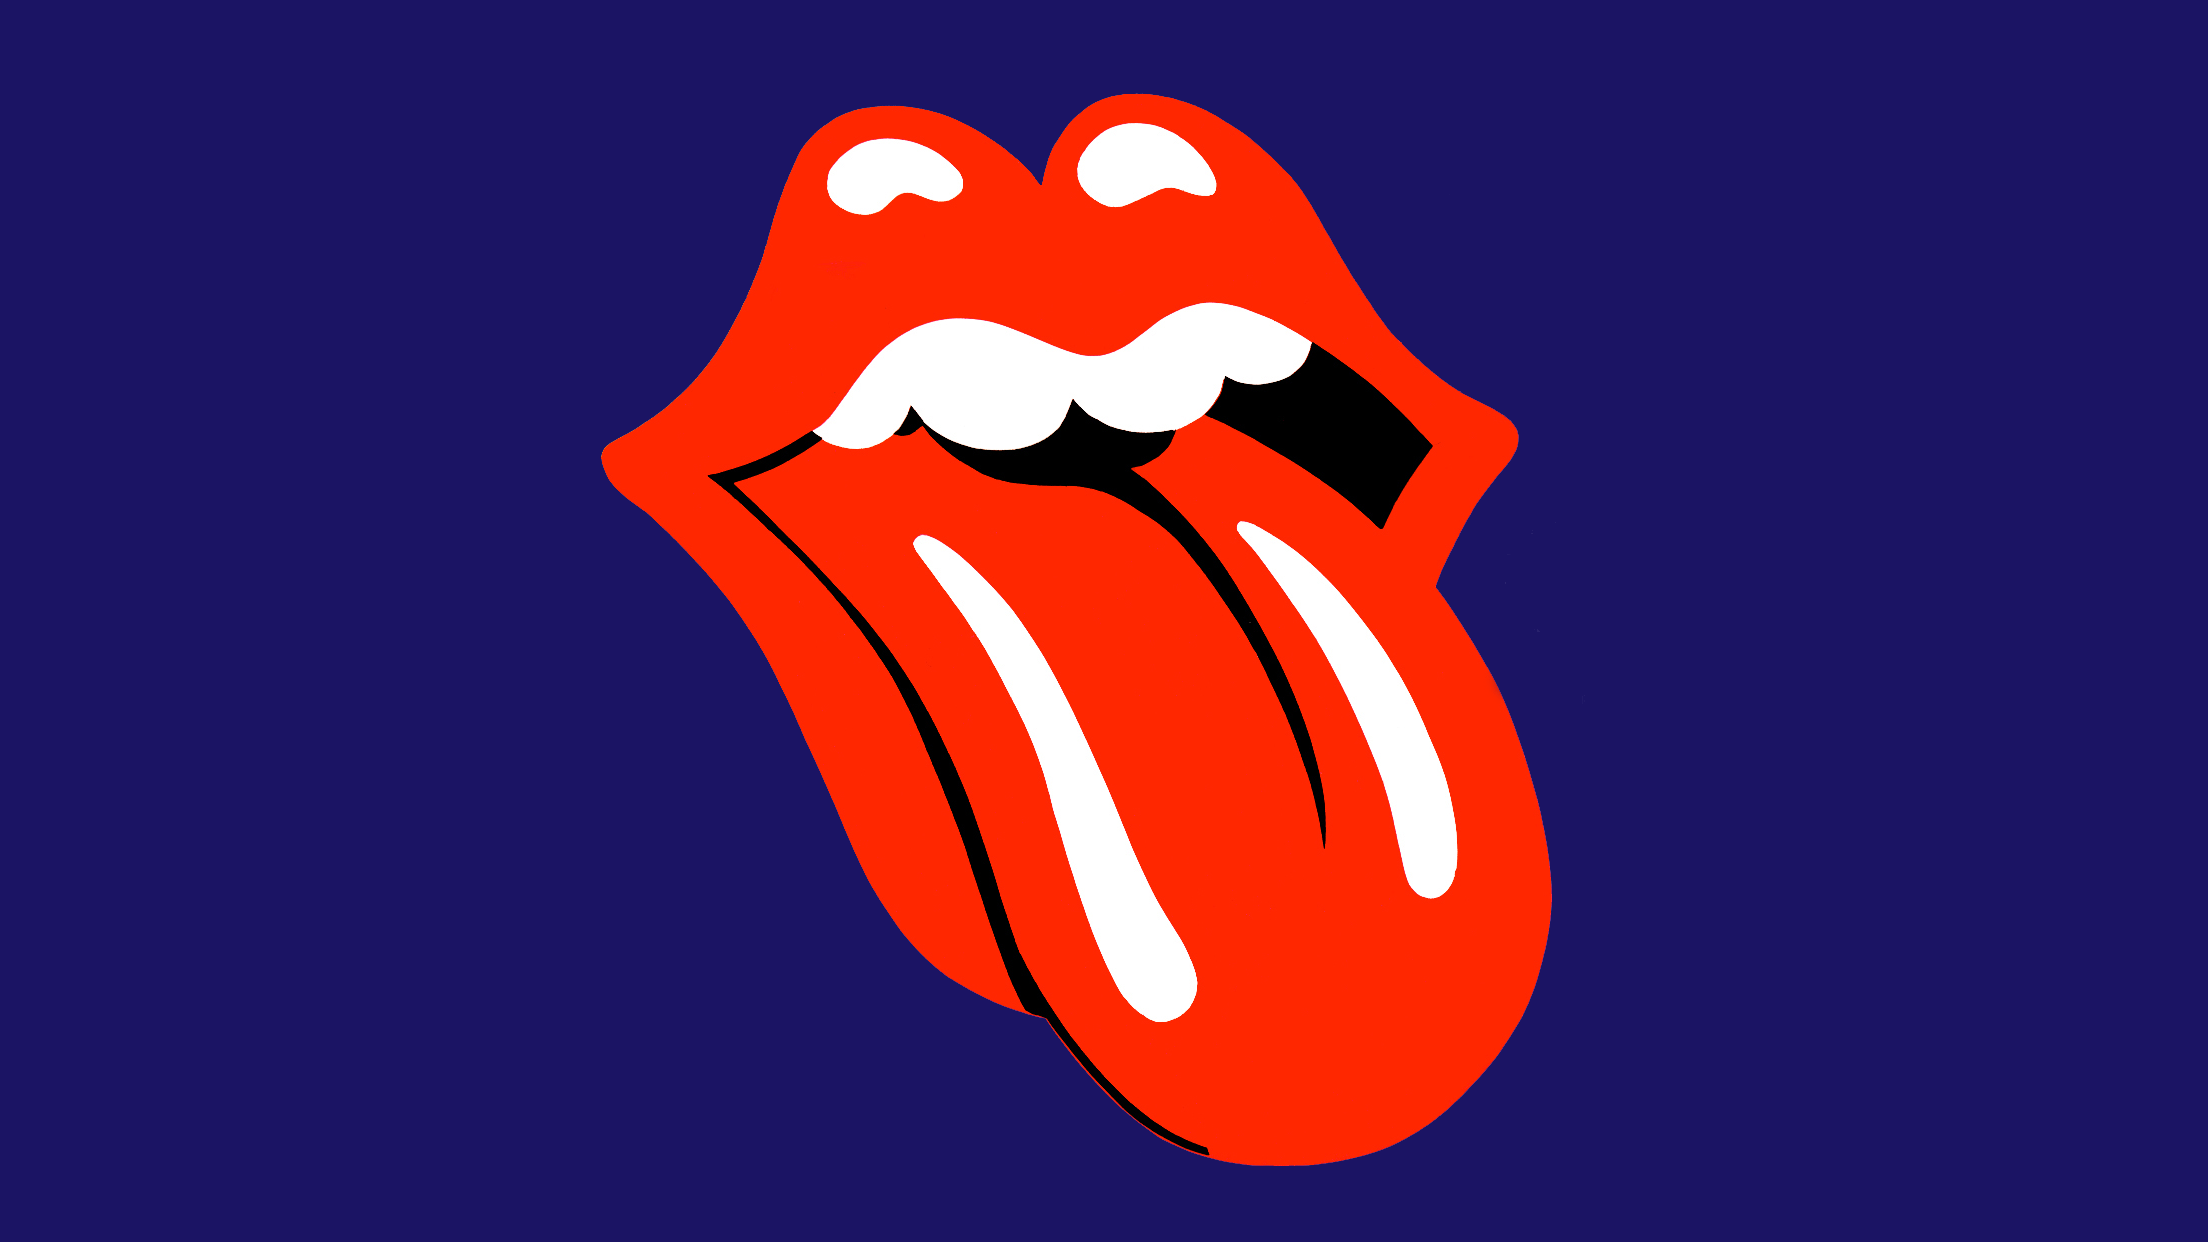 Music   The Rolling Stones Wallpaper 2208x1242